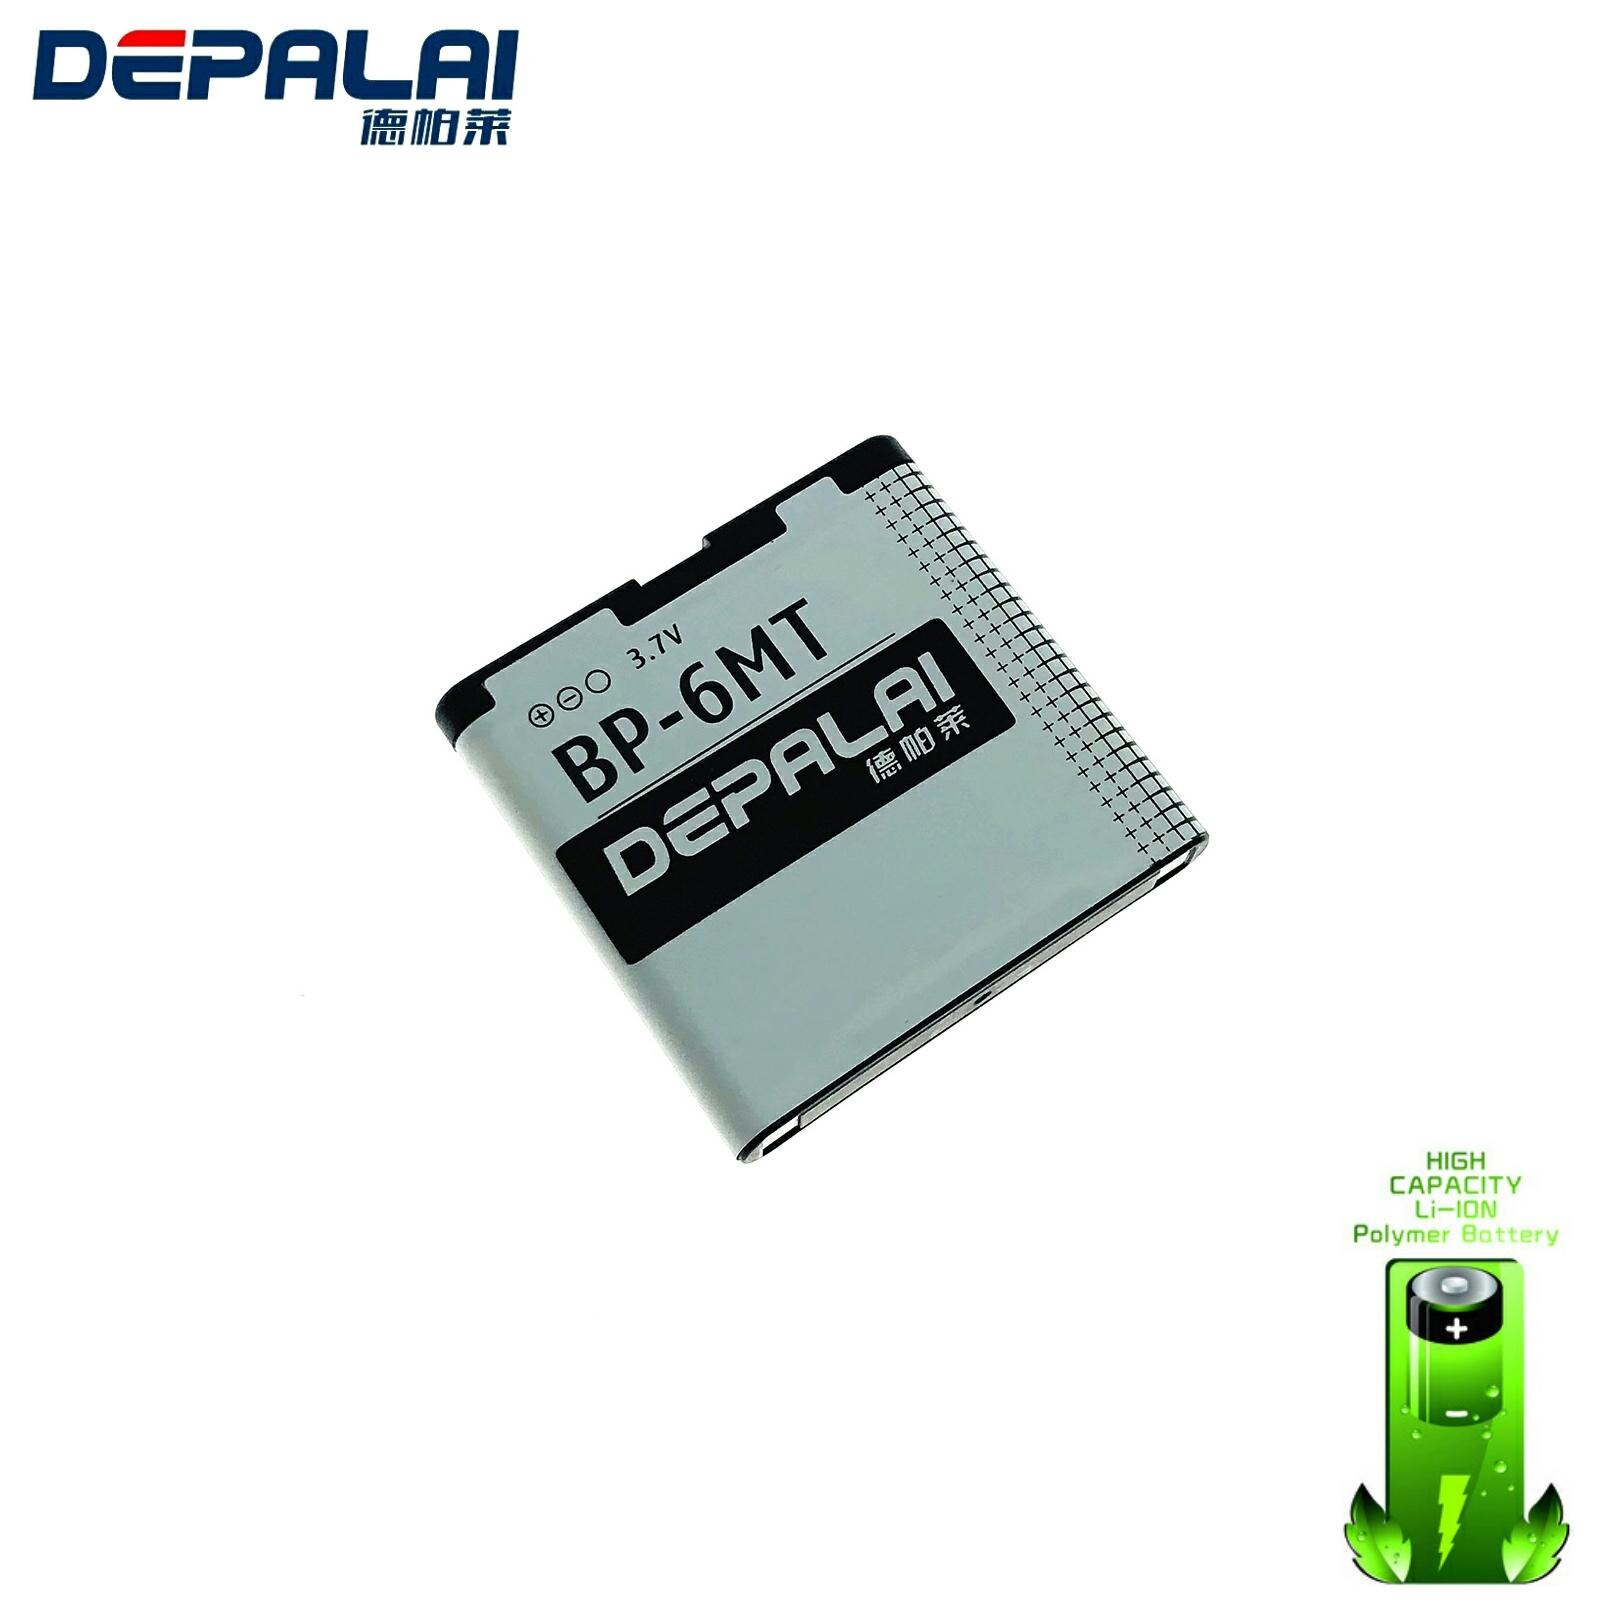 BP-6MT BL-6MT BP6MT 6MT Mobile Cell Phone Battery Batteries Bateria for Nokia 6720c E51 N81 N82 batt